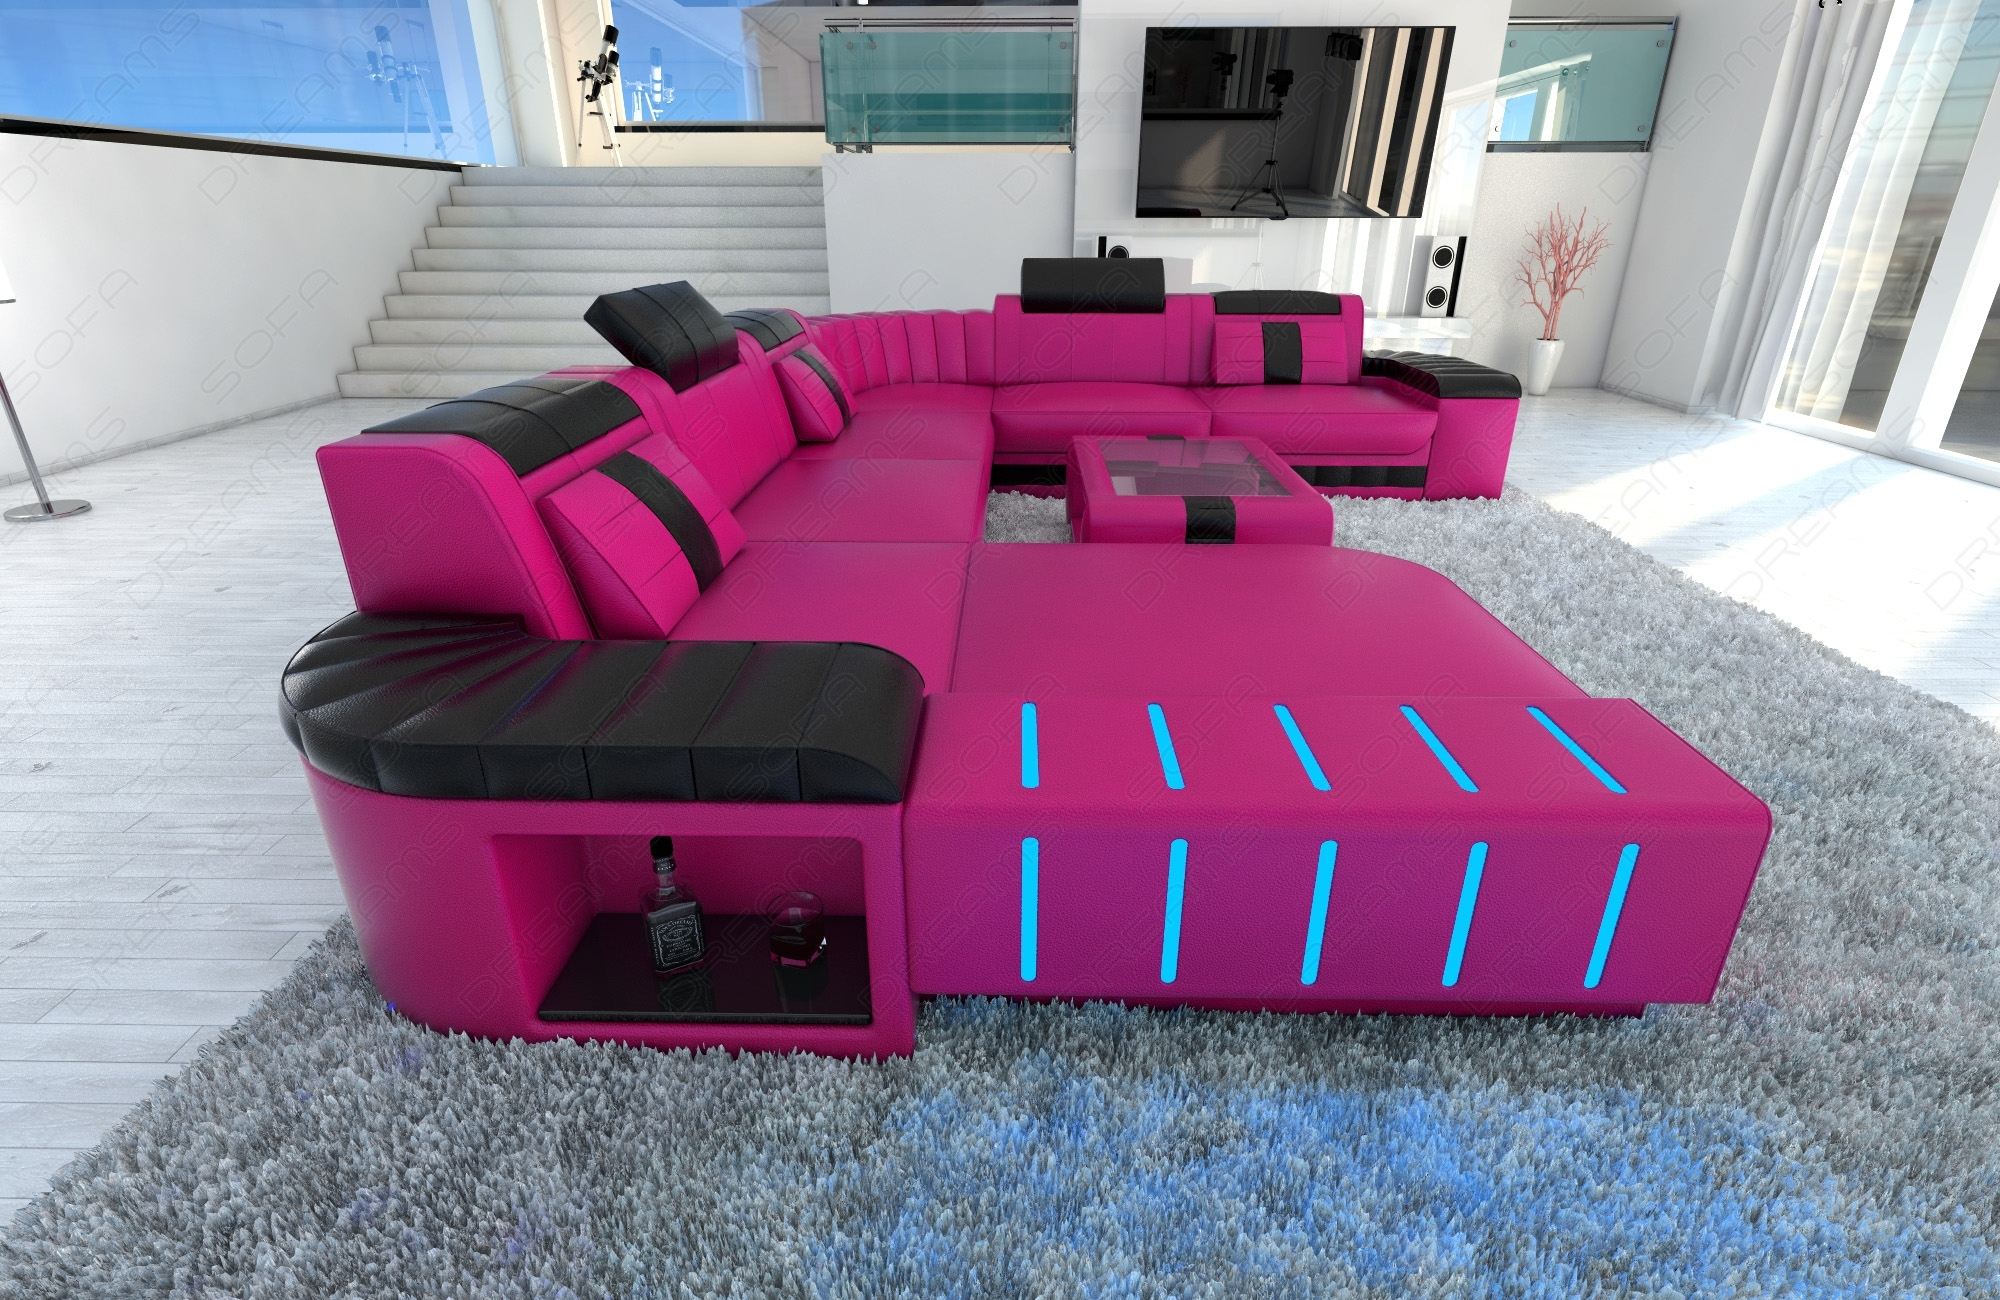 Xxl Sectional Sofa Bellagio Led U Shaped Pink Black Ebay ~ Idolza with regard to Sectional Sofas at Ebay